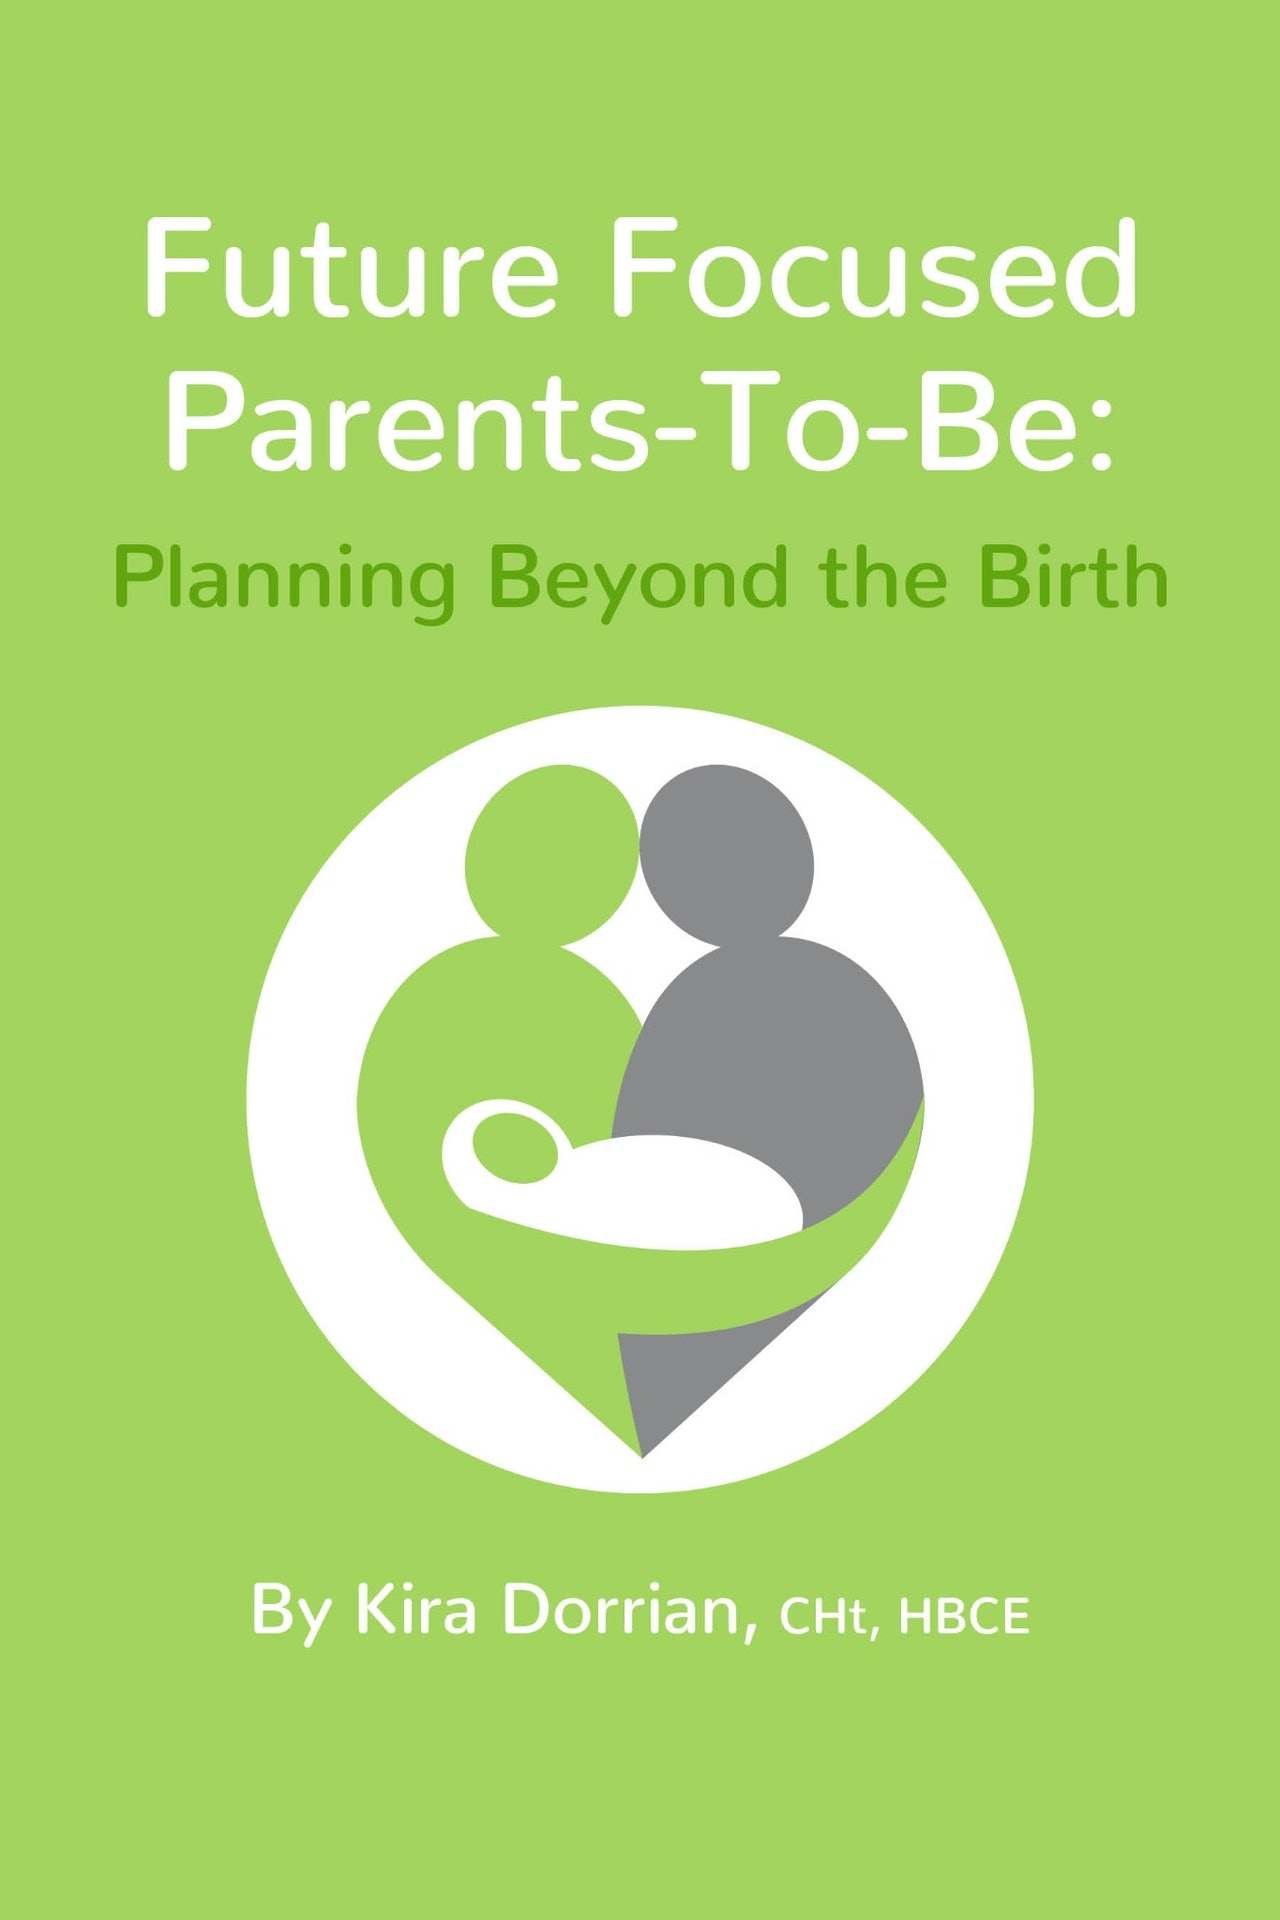 Future Focused Parents-To-Be: Planning Beyond the Birth